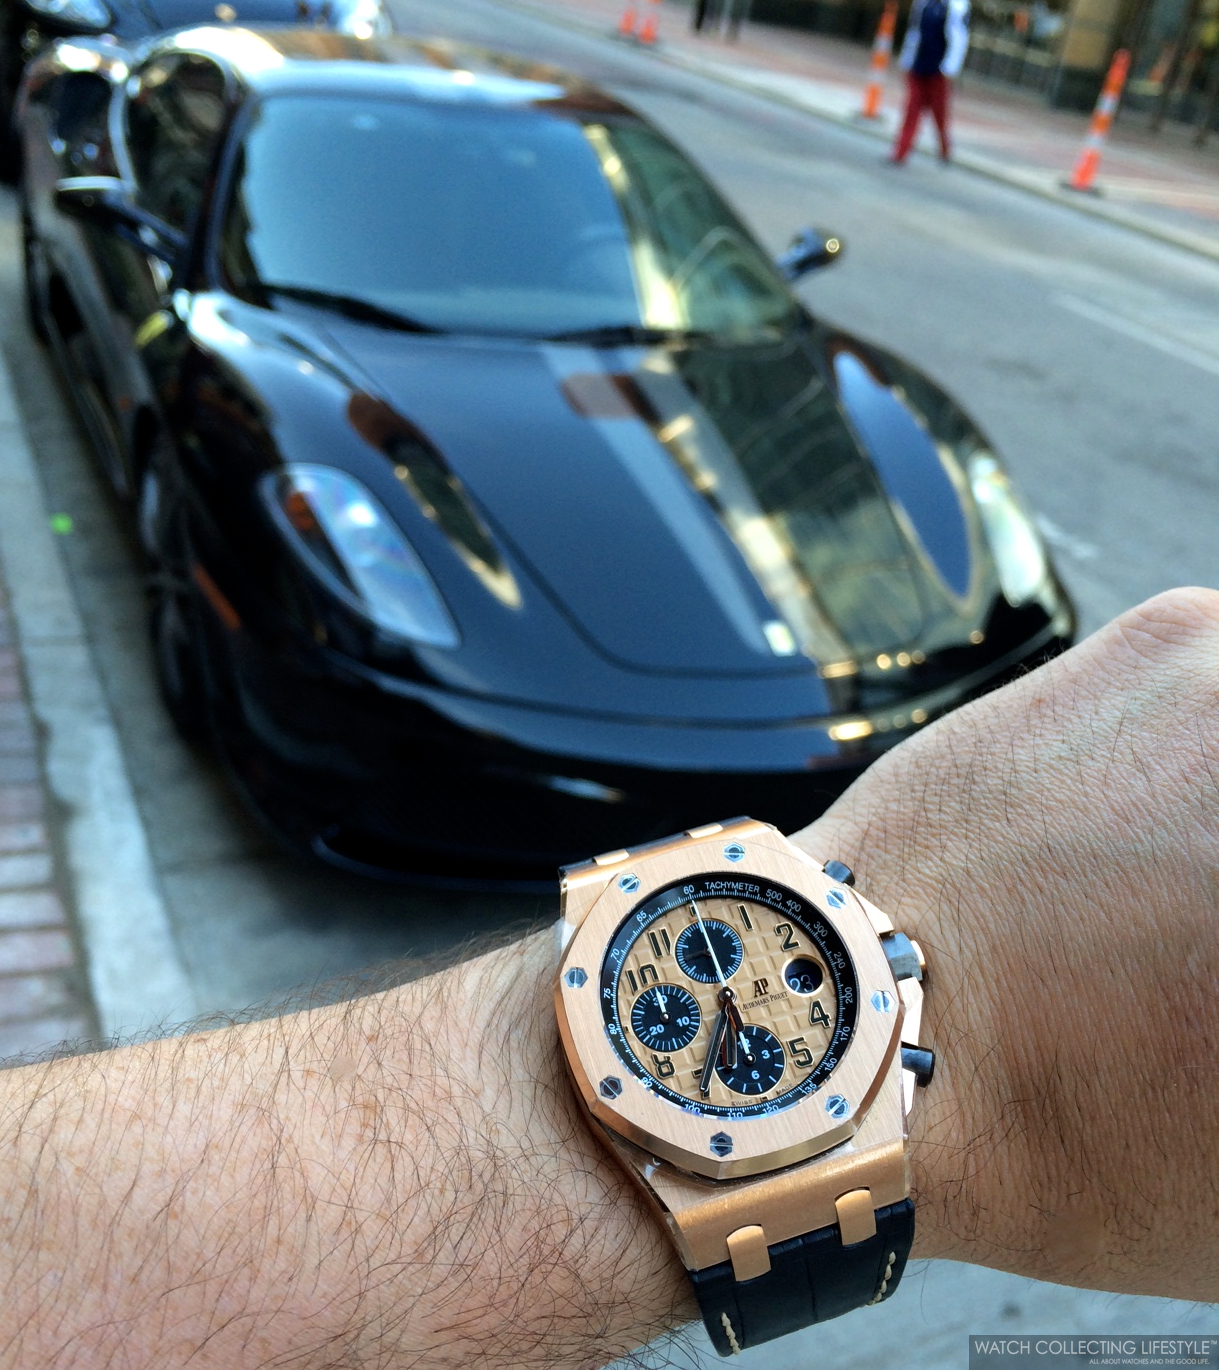 Experience Ferrari F430 Scuderia And The Audemars Piguet Royal Oak Offshore Chronograph Ref 26470or Rose Gold Absolute Perfect Pairing Watch Collecting Lifestyle